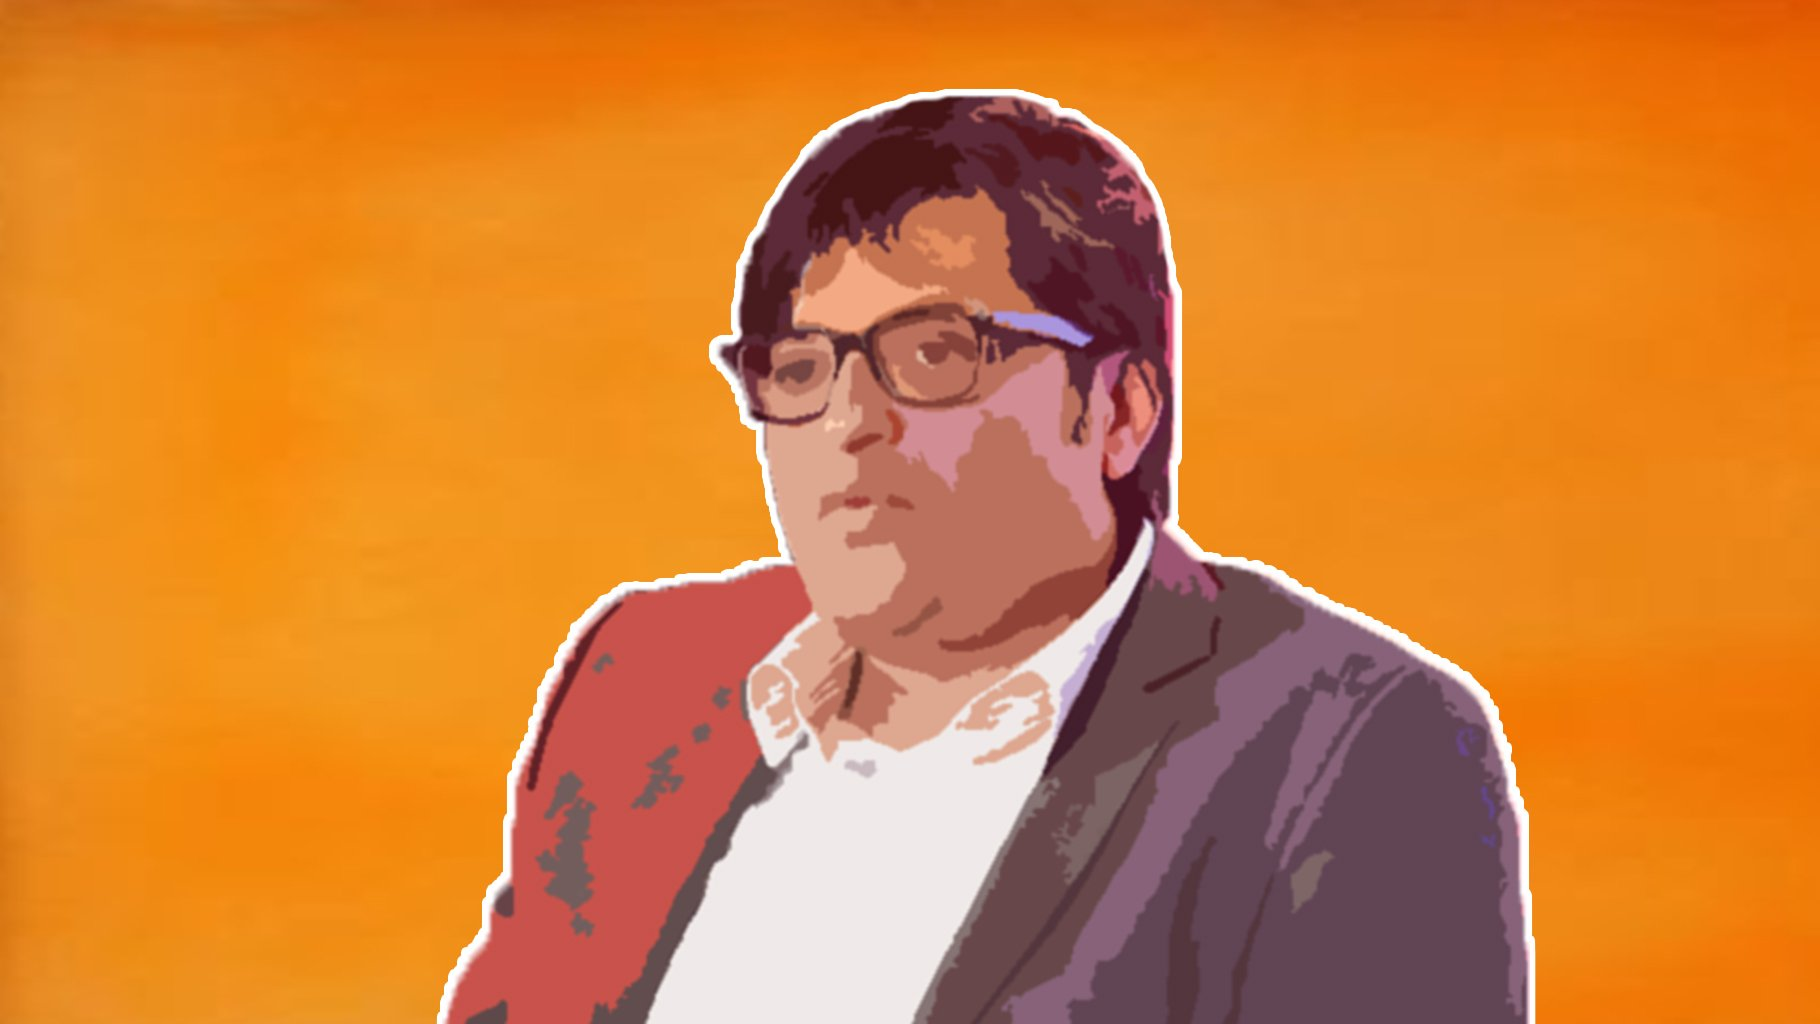 Arnab Goswami has changed the name of his upcoming channel. Credit: India Today/Twitter